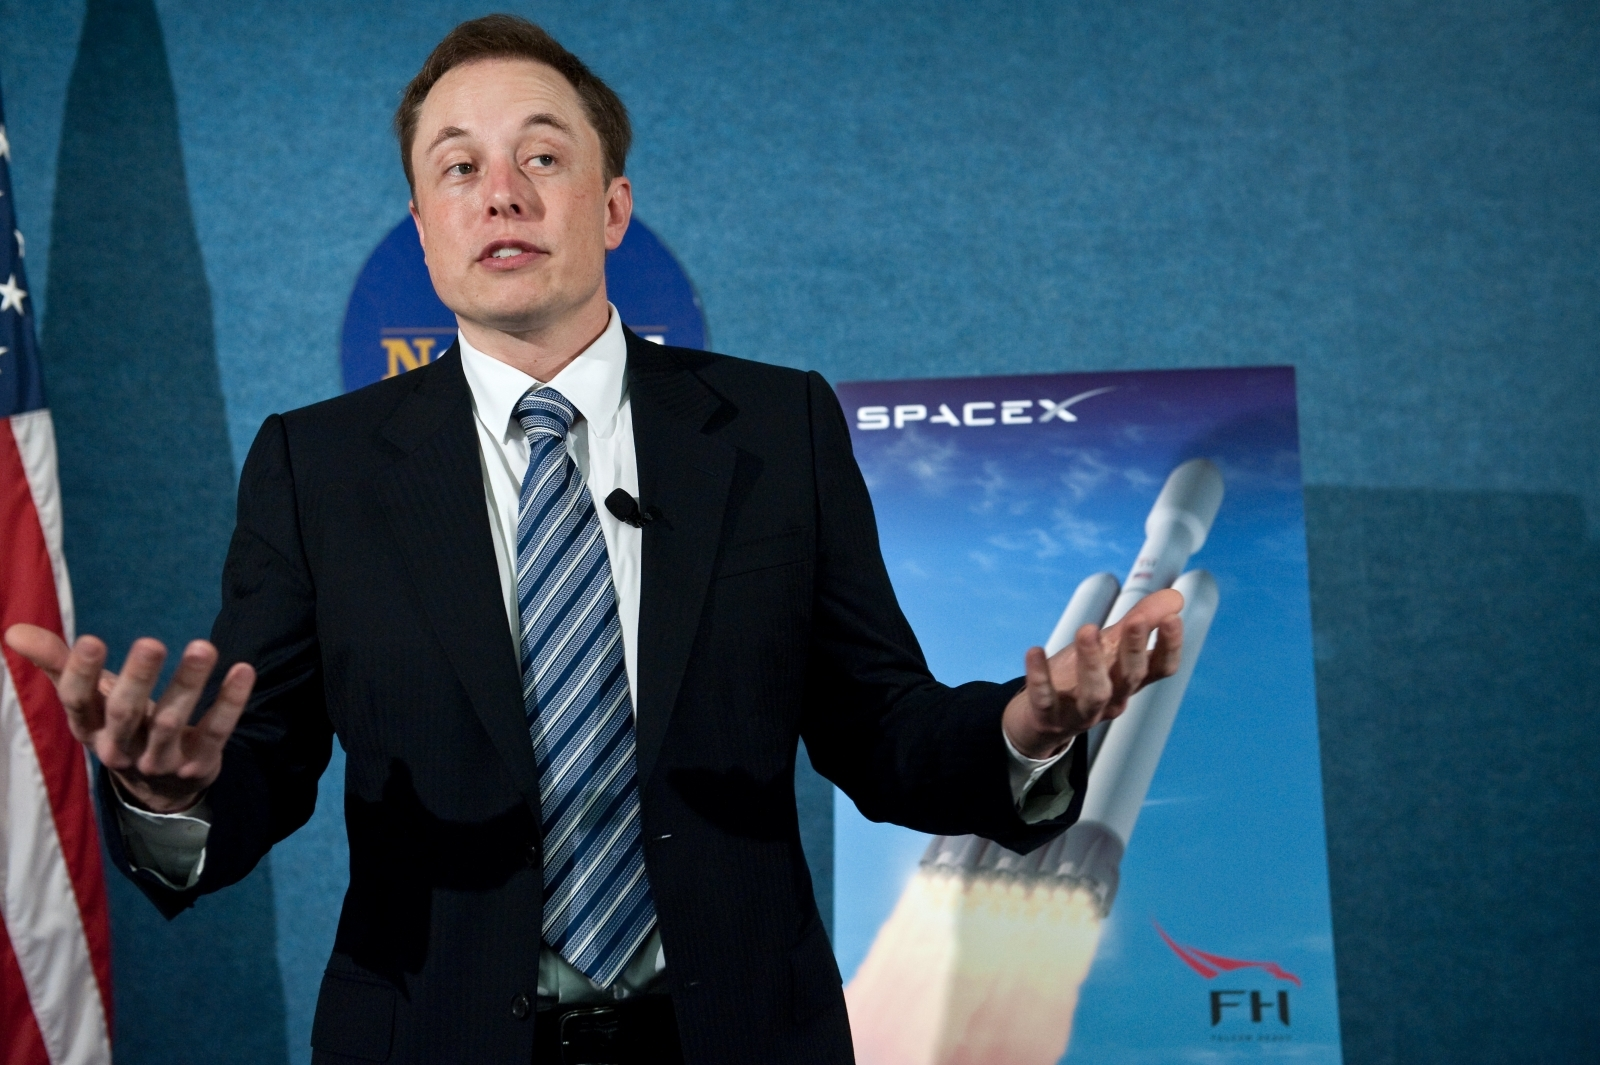 SpaceX's Falcon Heavy launch imminent as Elon Musk unveils first photos